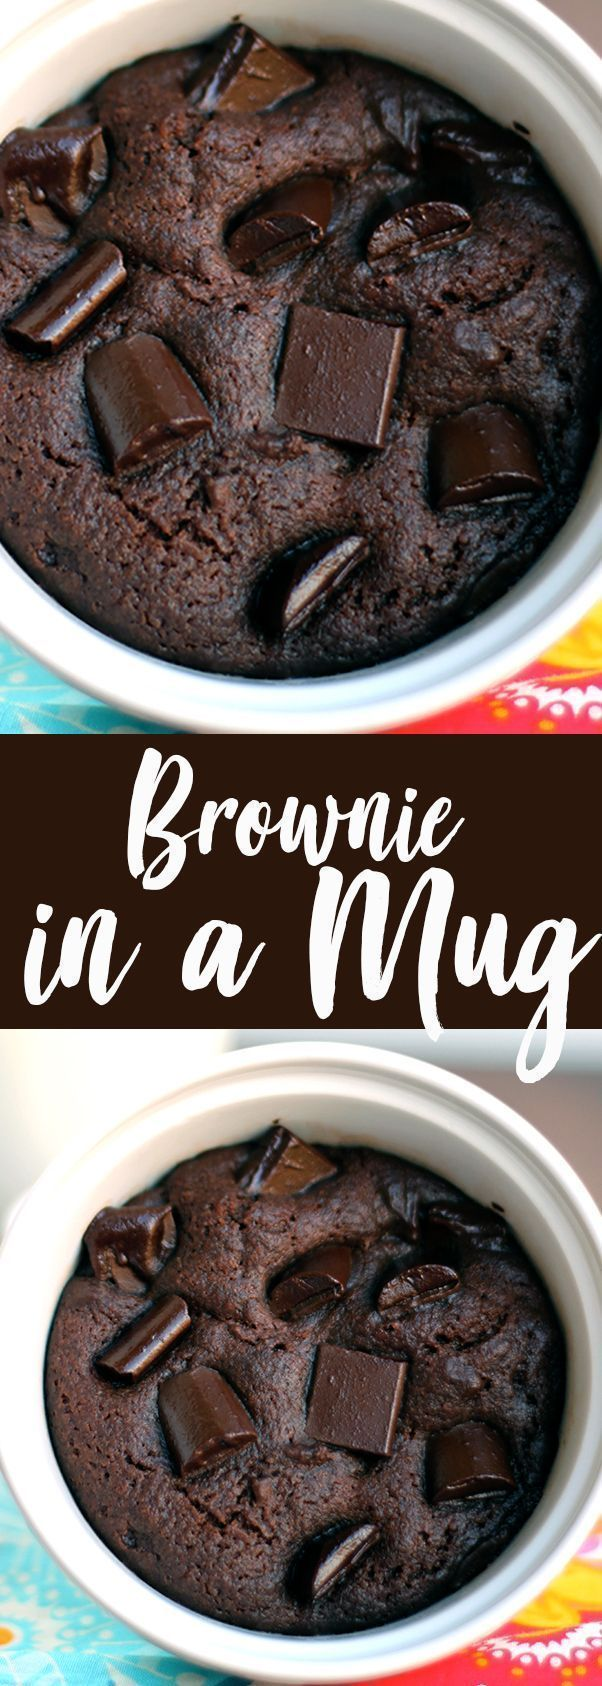 Brownie in a Mug - #à #brownie #in #Mug #cupcakeinamug in ...